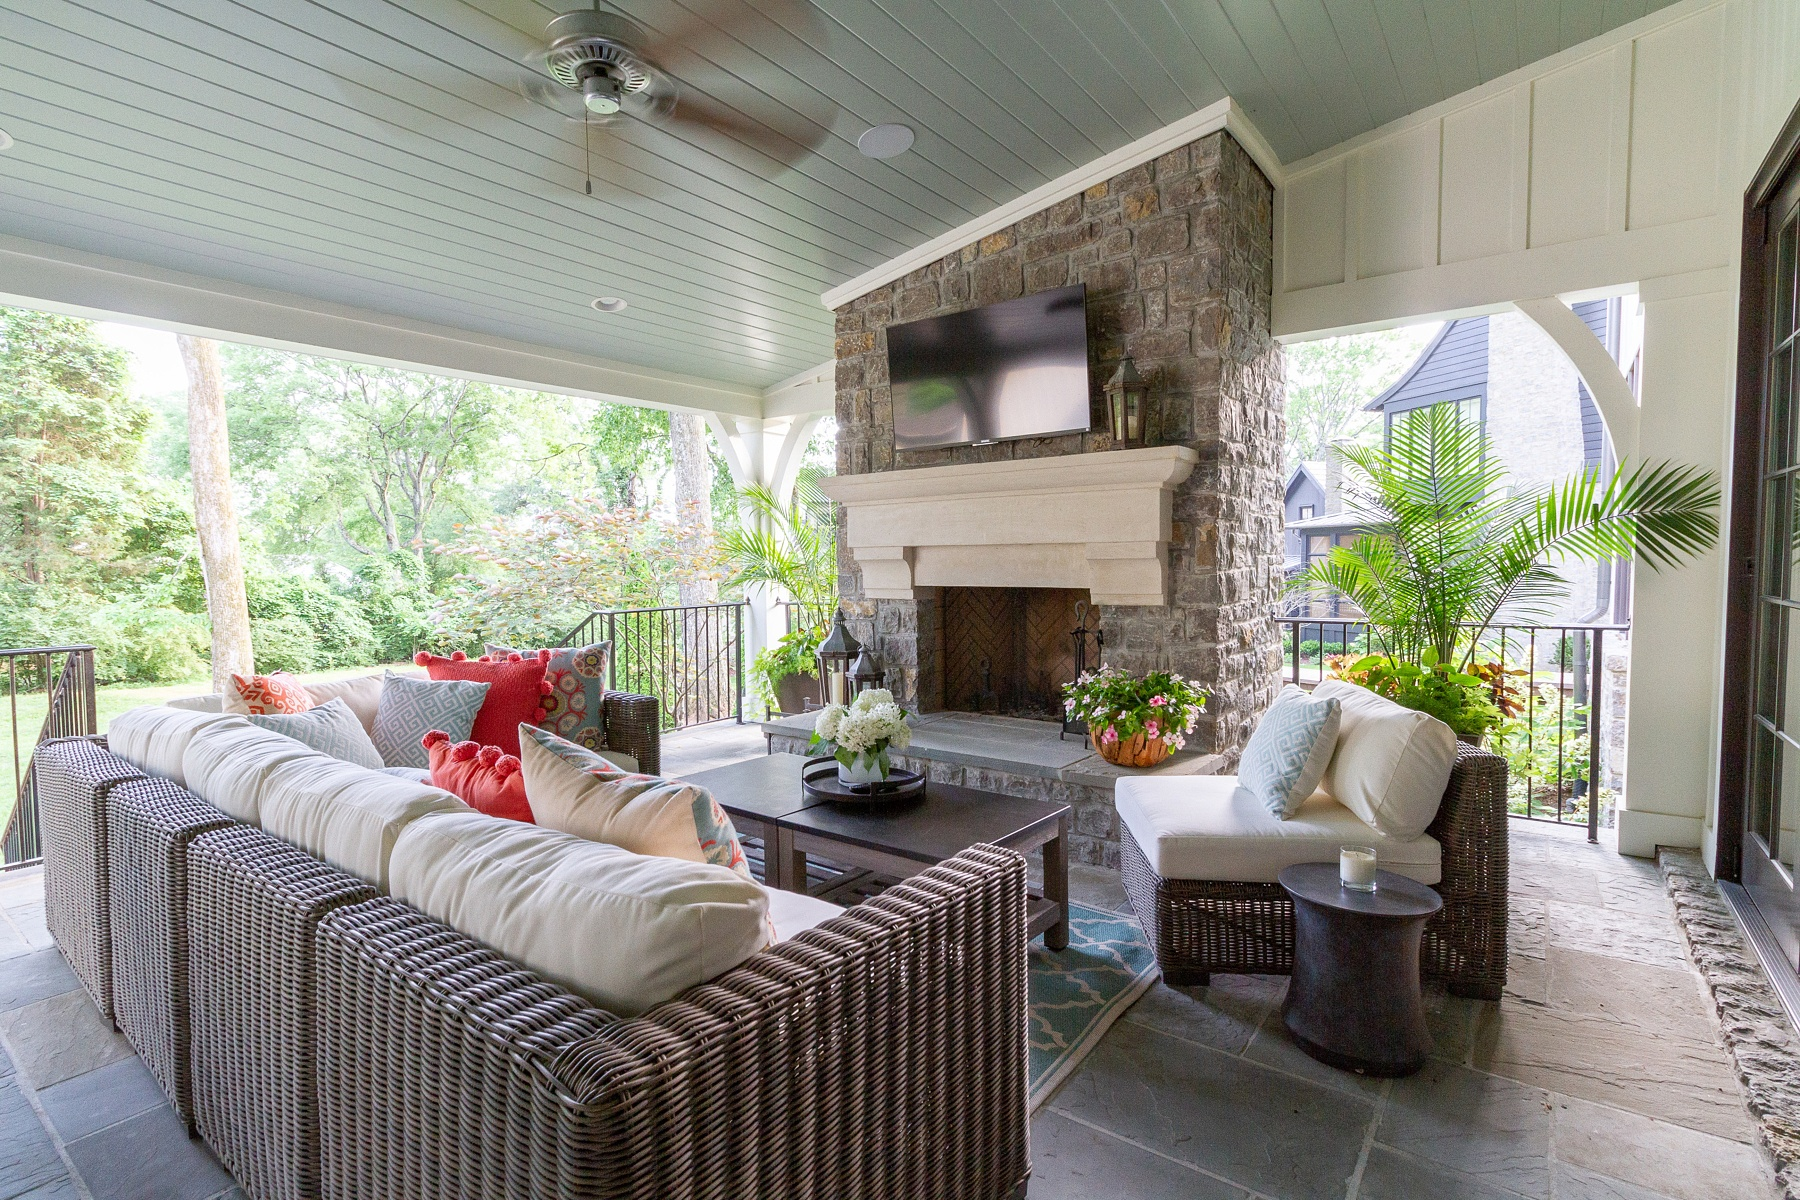 At the opposite end, this dreamy porch features a big, cozy stone fireplace that makes the outdoor living room even more inviting. The TV turns it into a perfect spot for watching fall football, too.